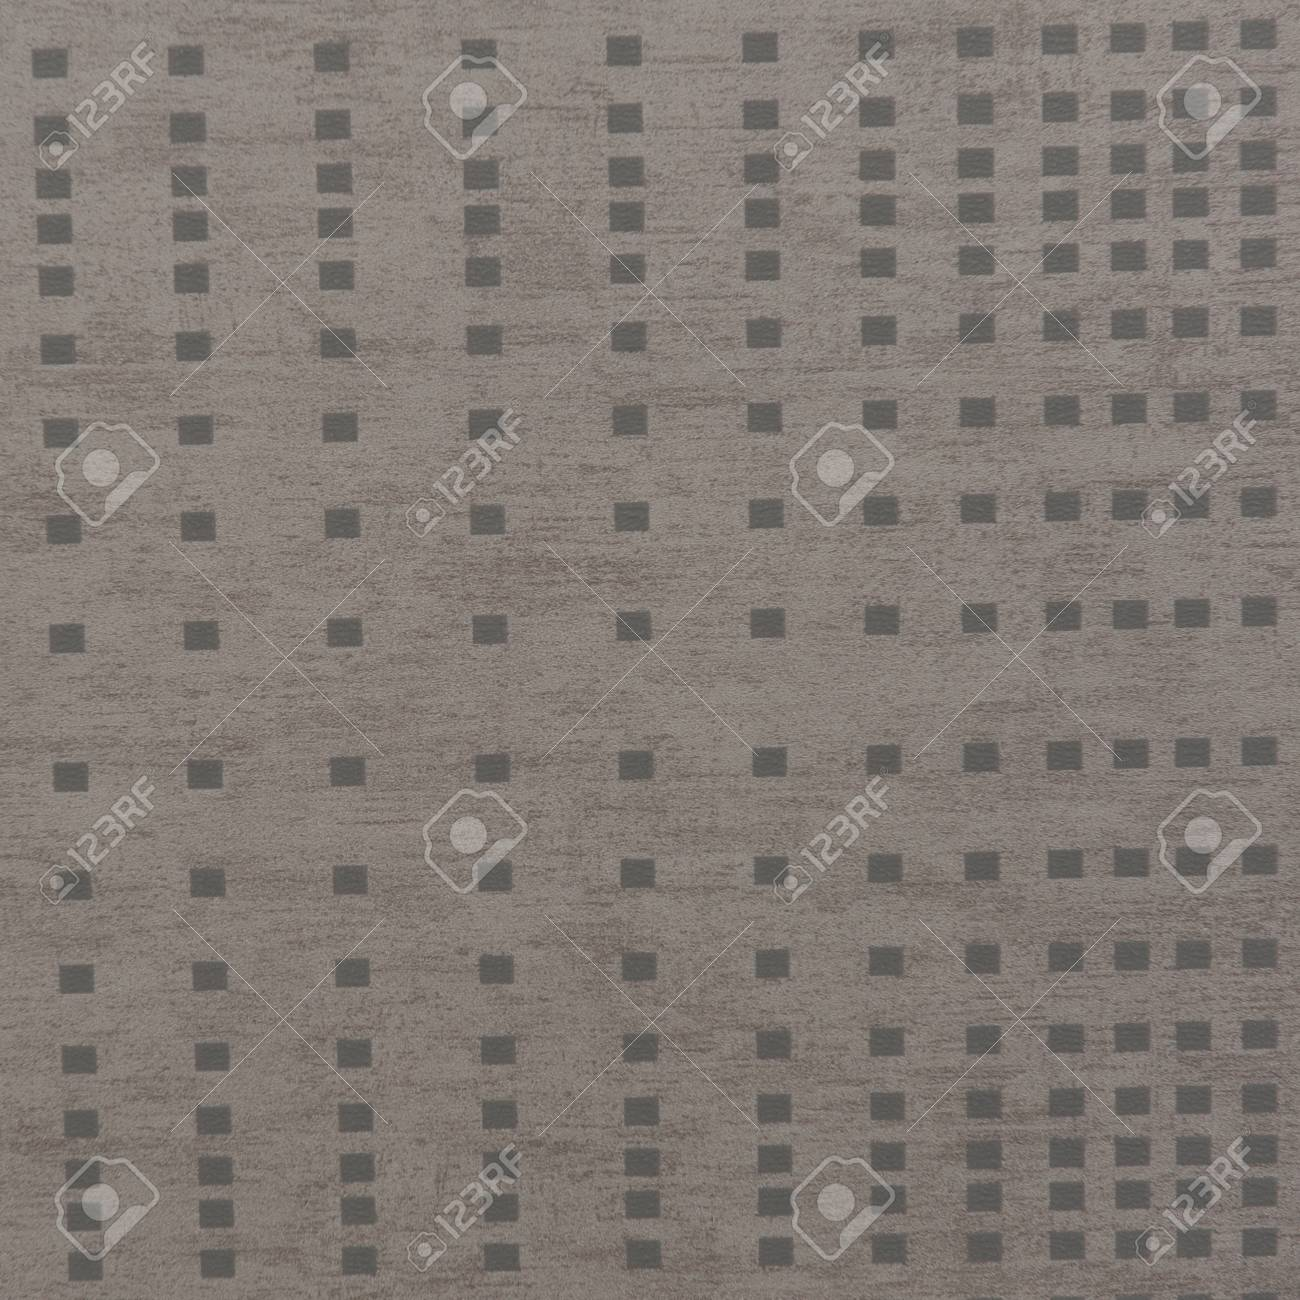 Seamless background for textile design. Wallpaper pattern Stock Photo - 14247541